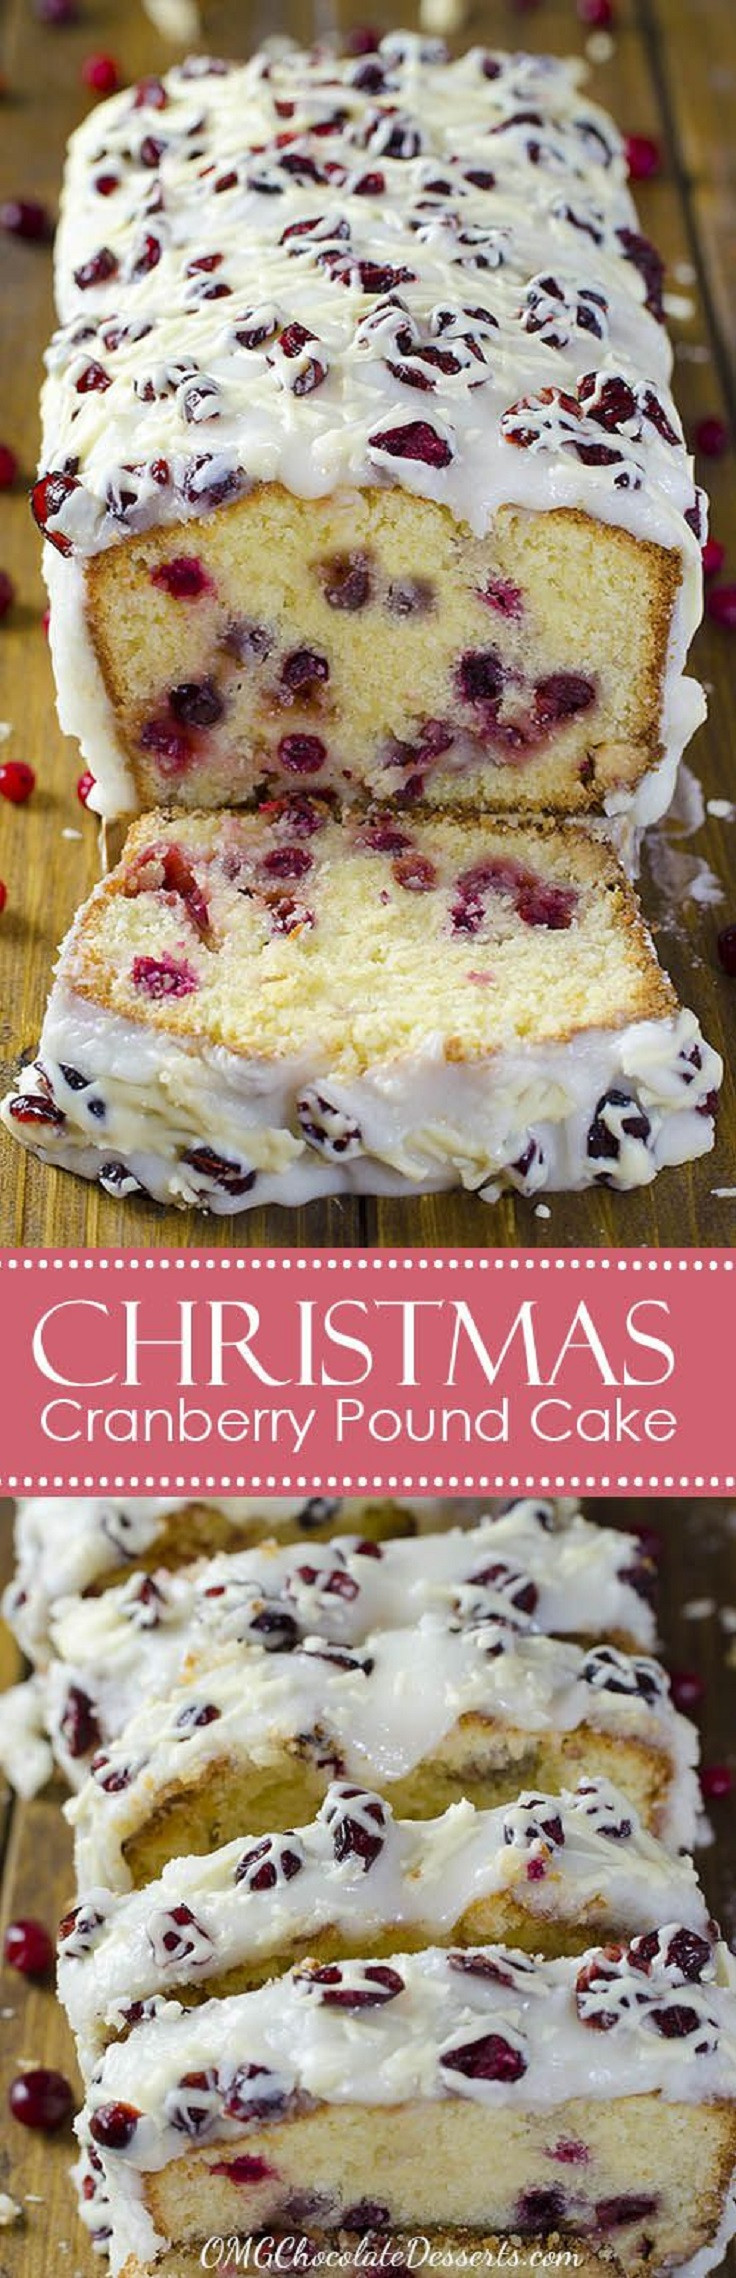 Christmas Pound Cake Recipe  16 Symbolic Cranberry Christmas Cakes to Satisfy Everyone